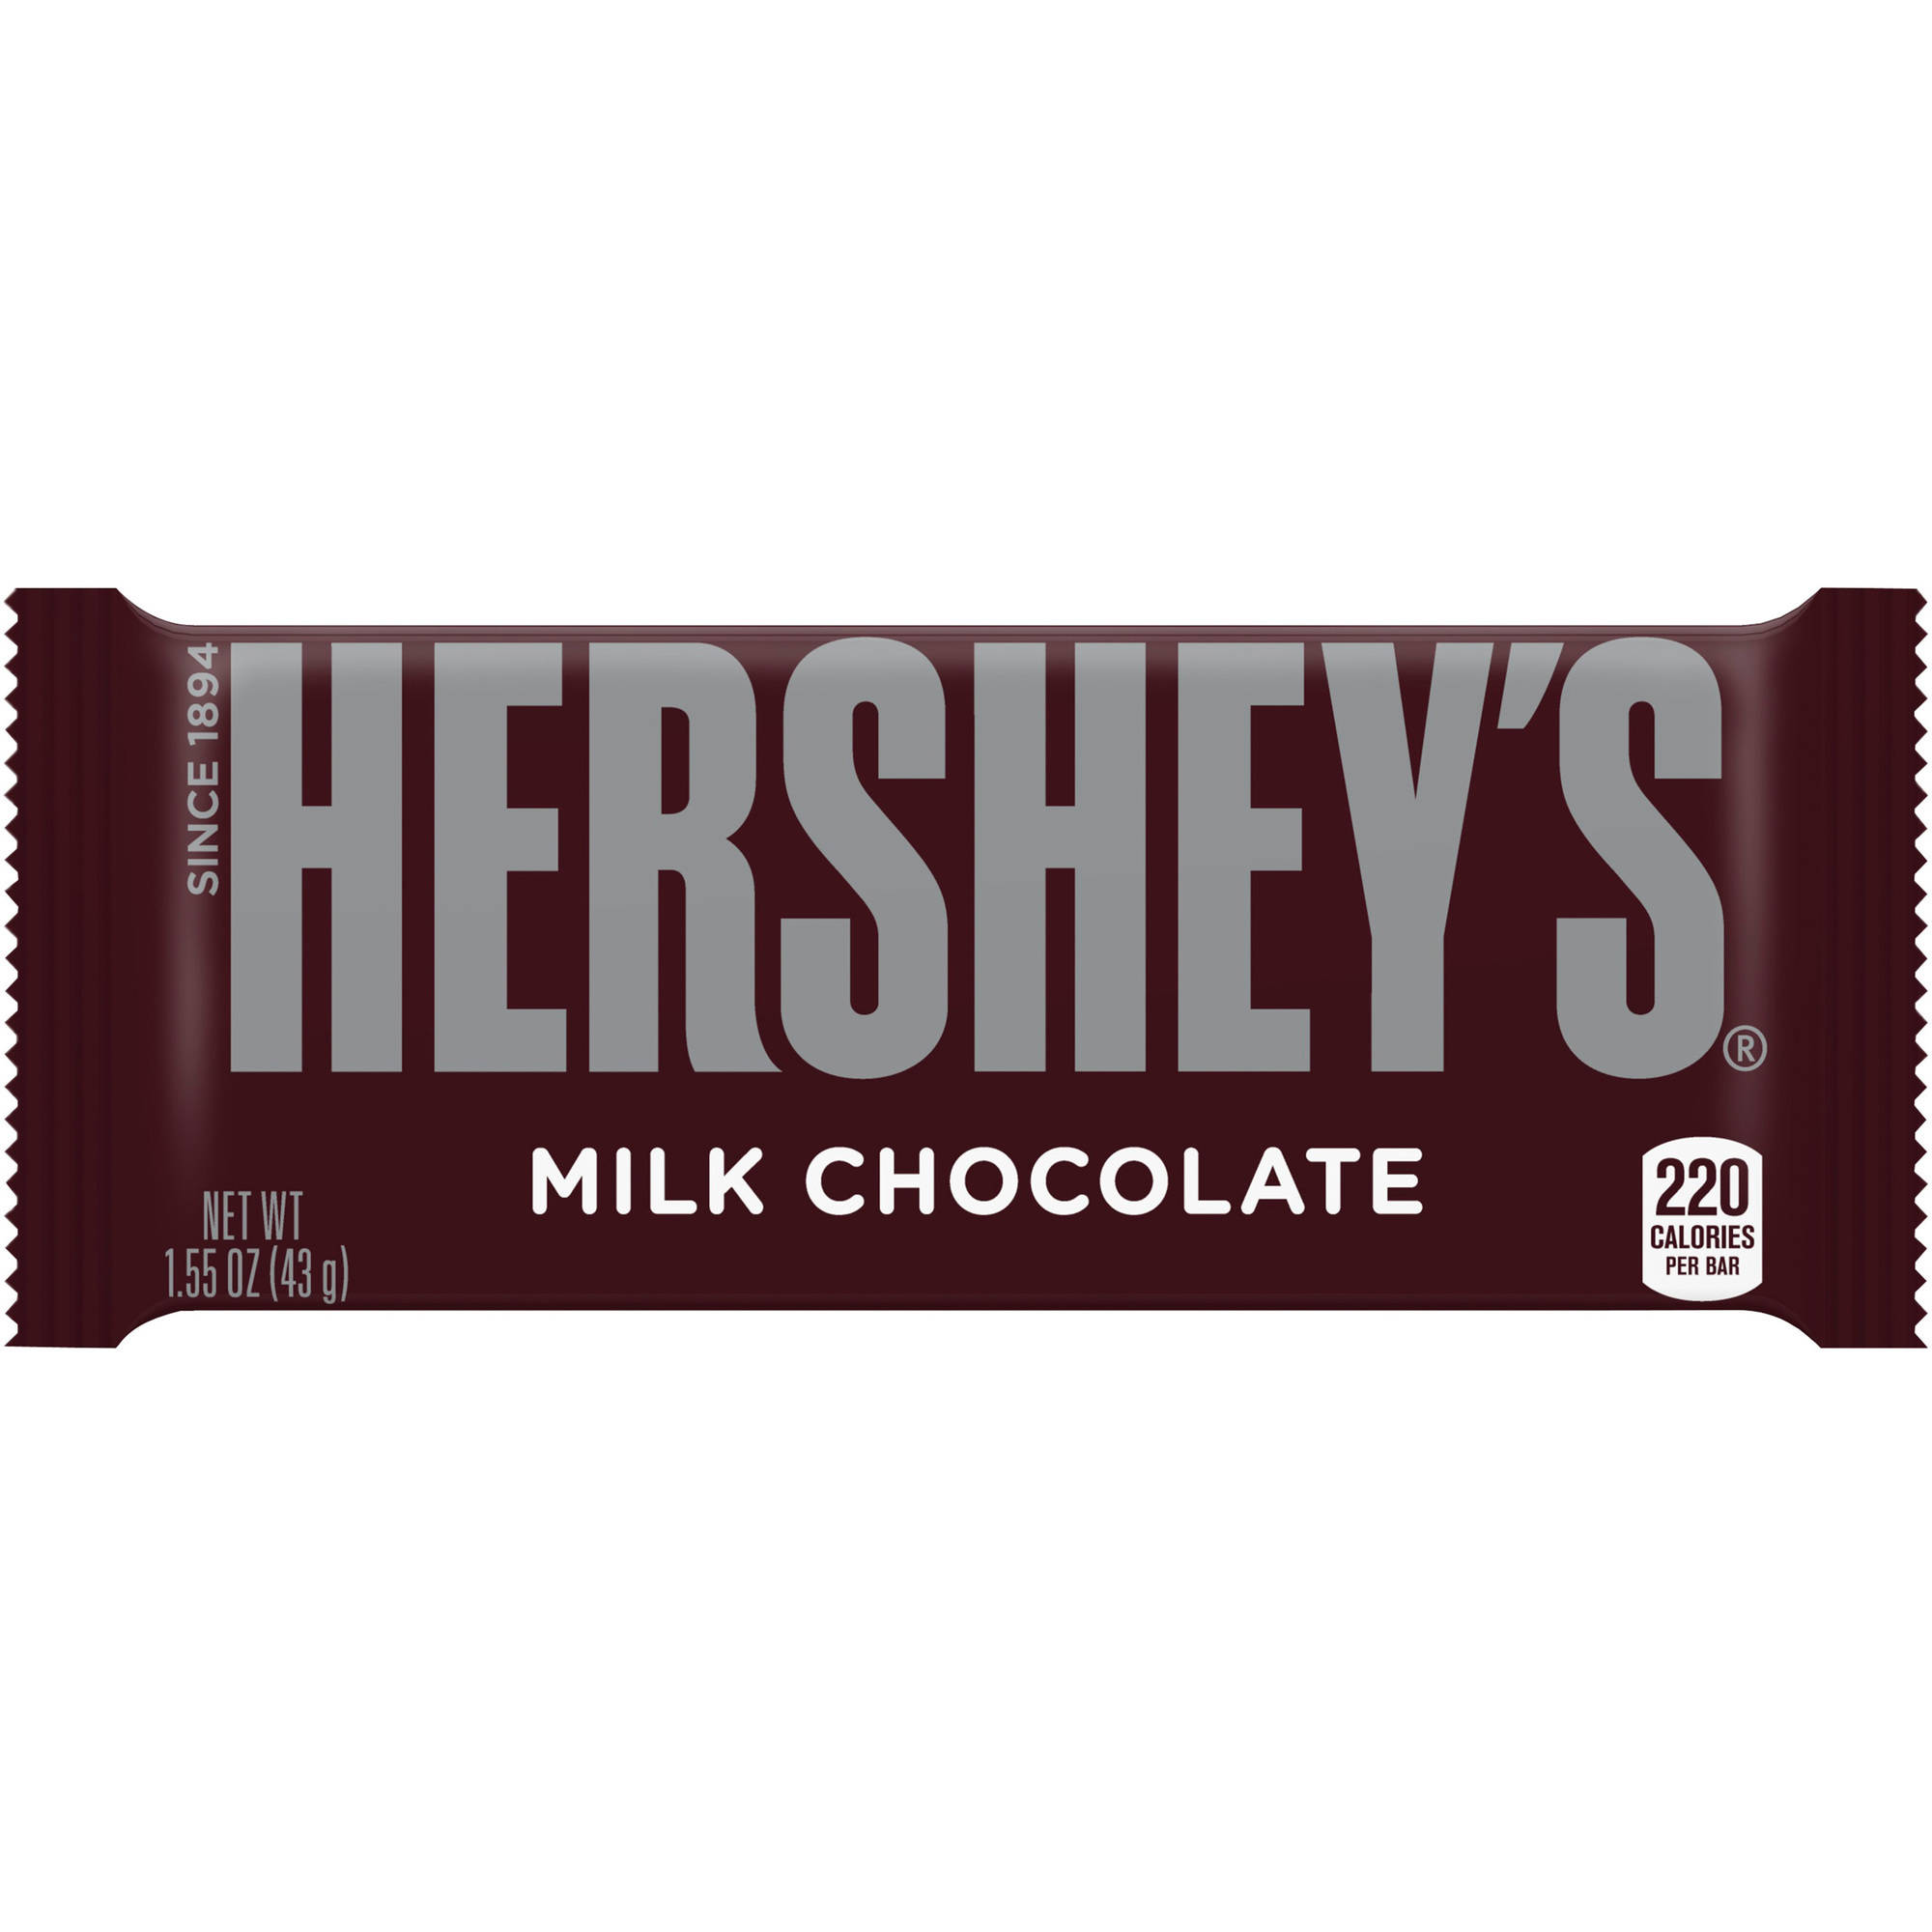 Hershey's Milk Chocolate Candy Bar, 1.55 oz